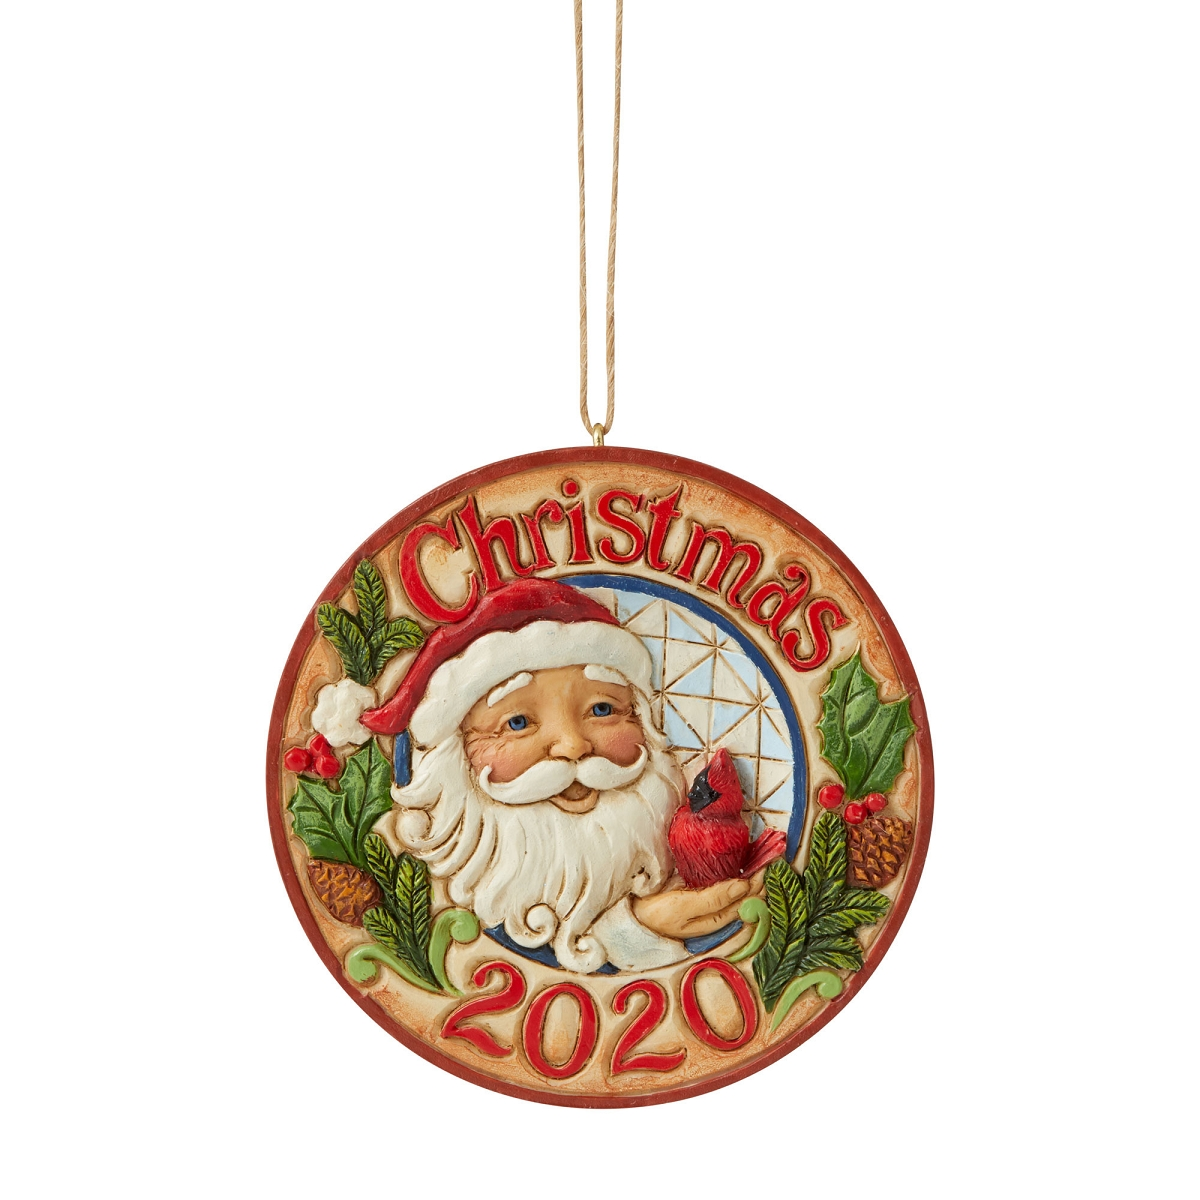 Jim Shore 2020 Christmas Ornament 2020 Santa with Cardinals Dated Jim Shore Heartwood Creek